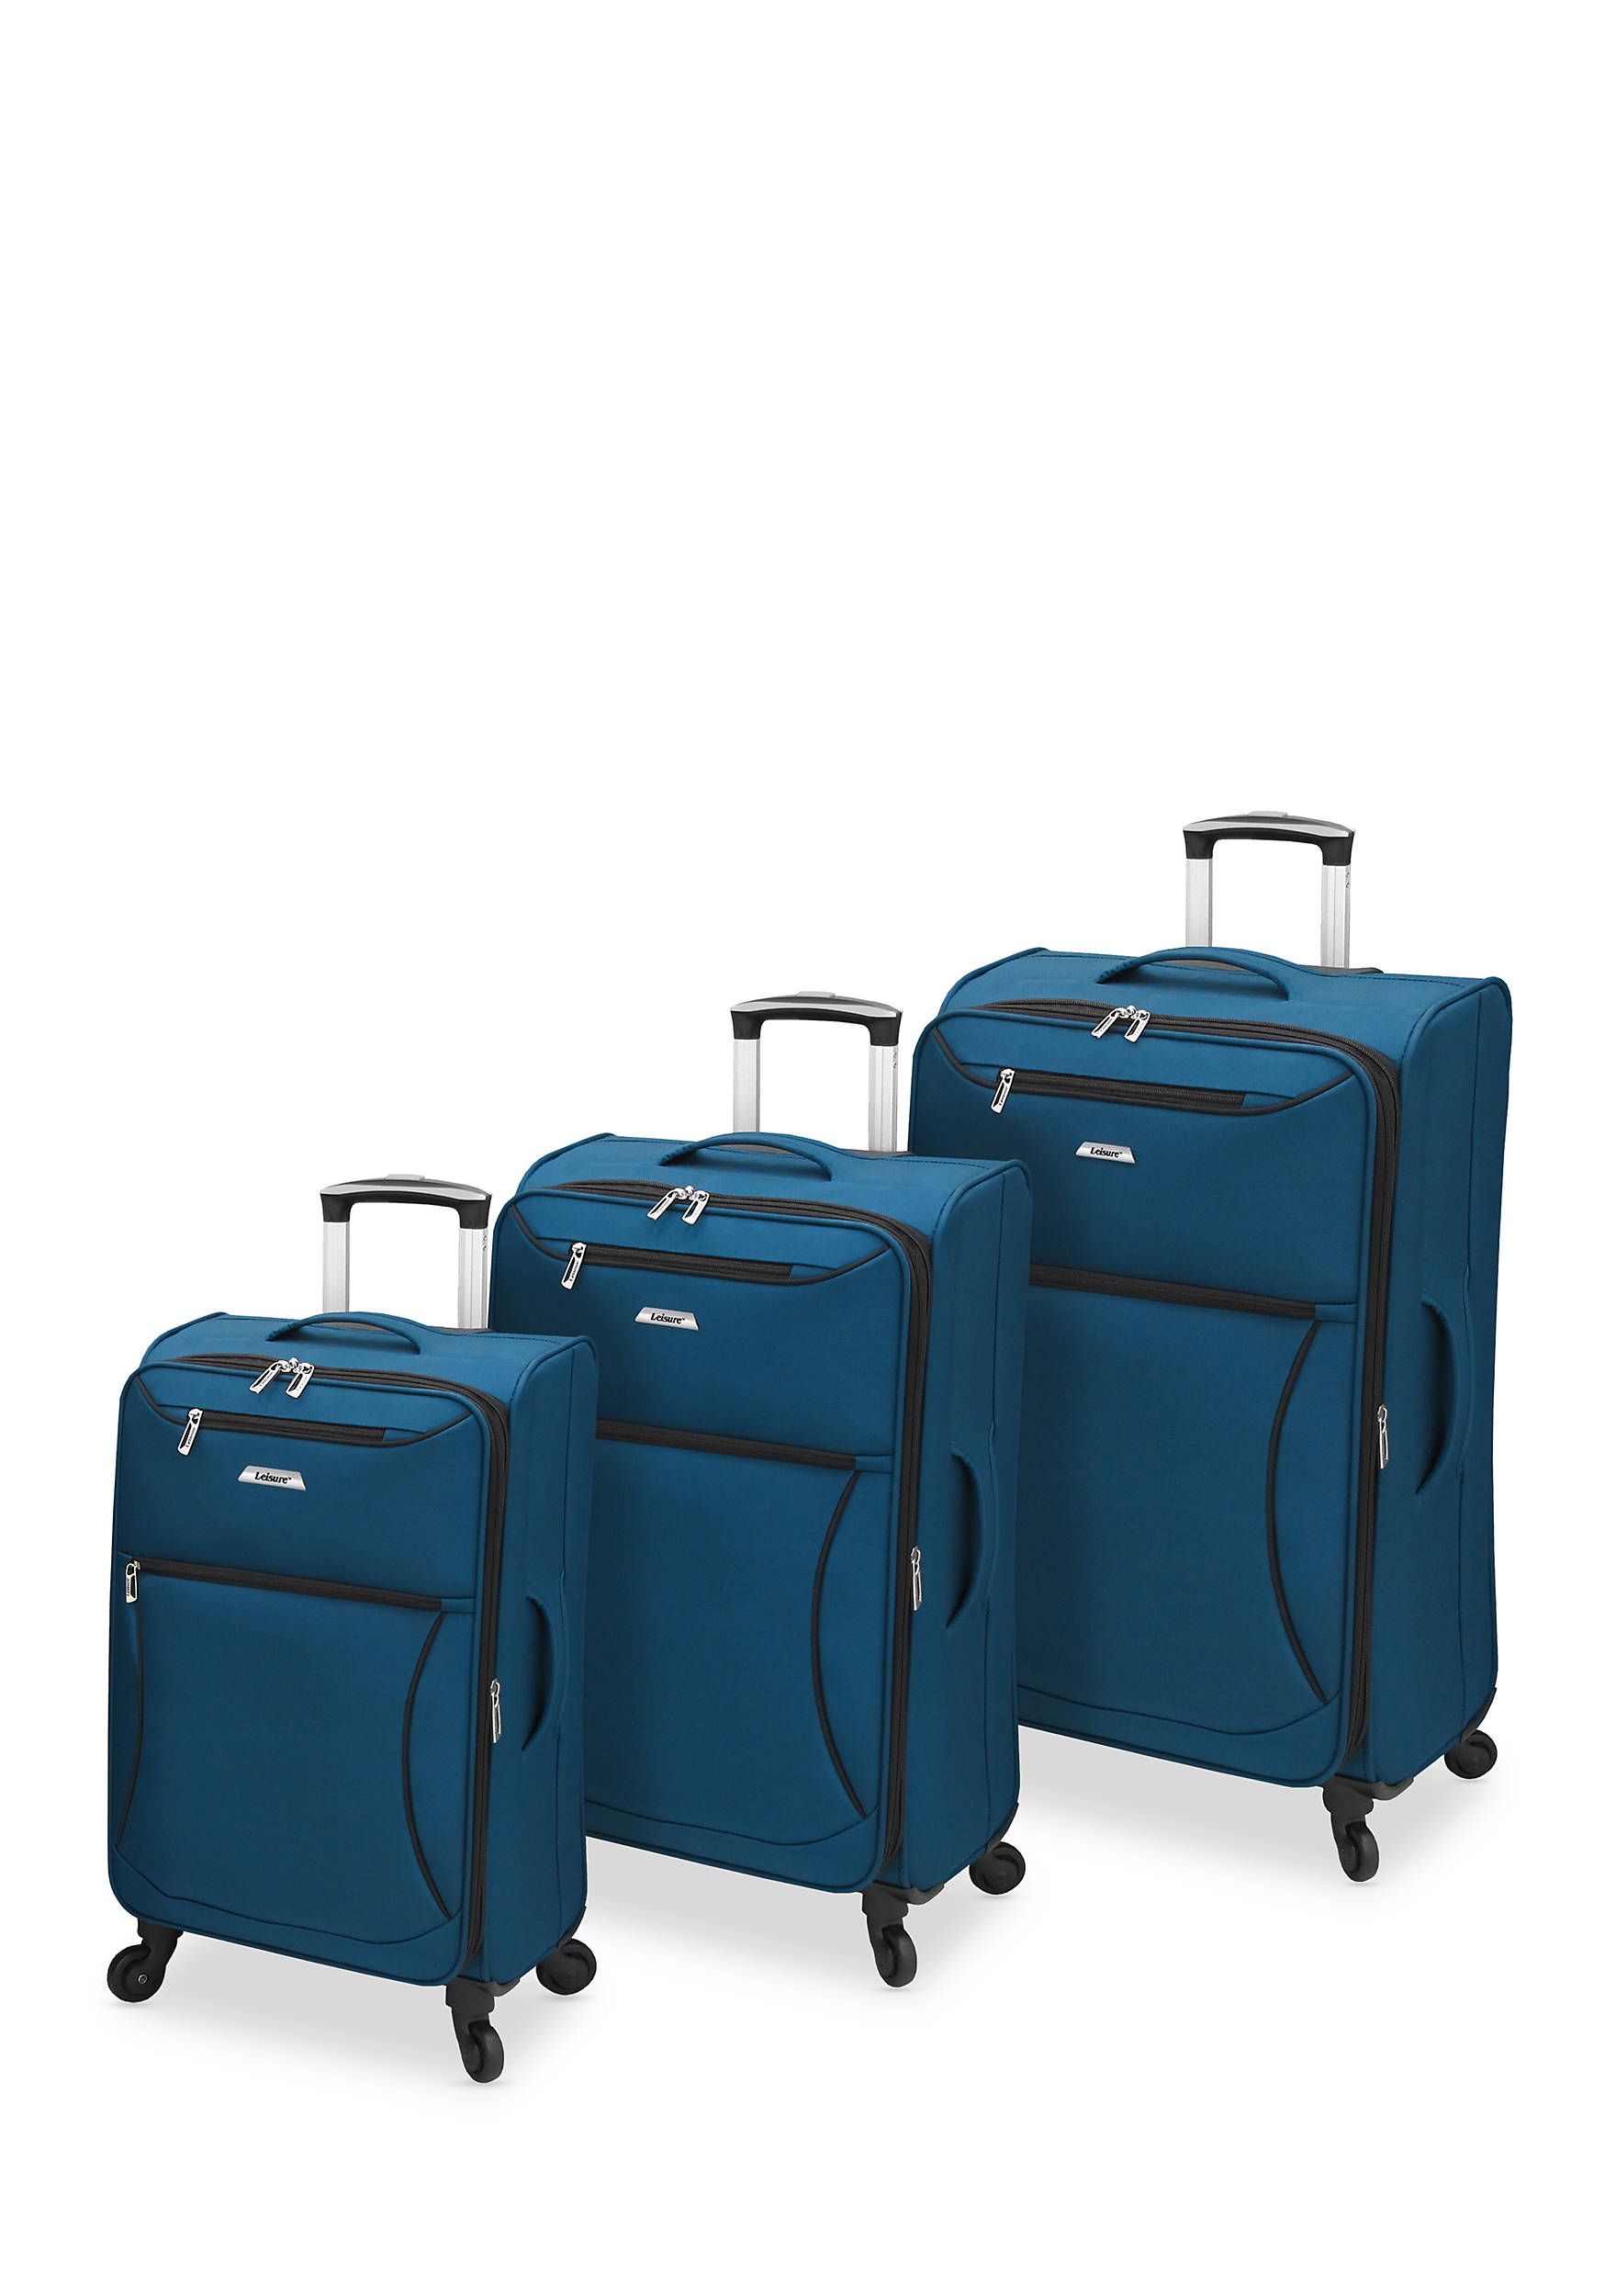 Leisure Vector FeatherLight Spinner Luggage Collection - Sapphire ...